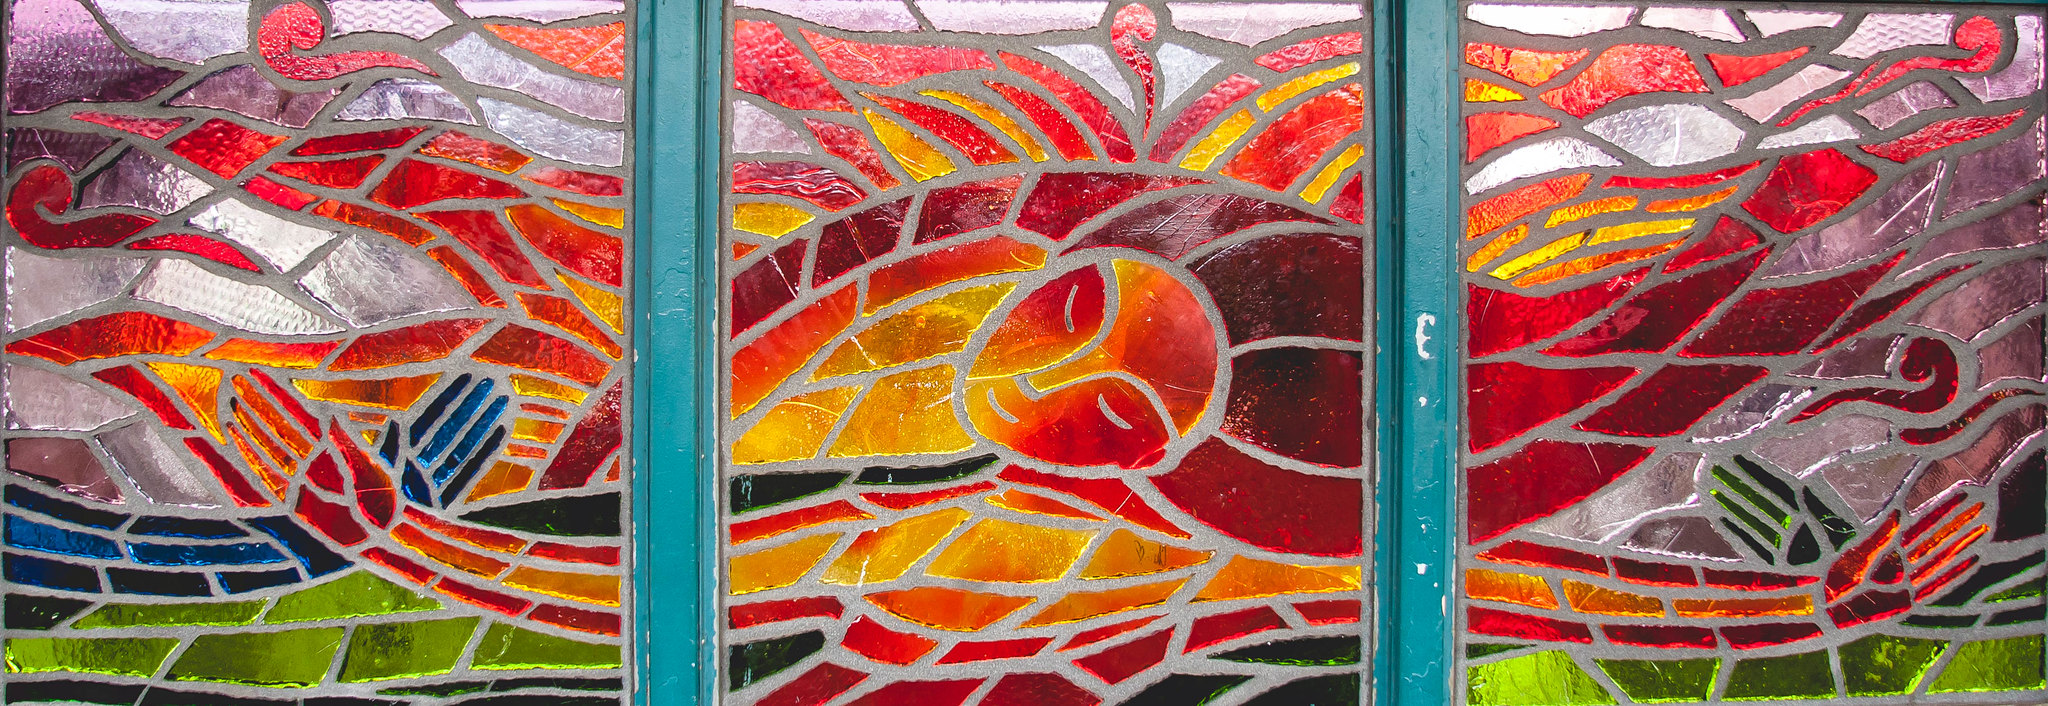 Stained Glass (2 of 4)